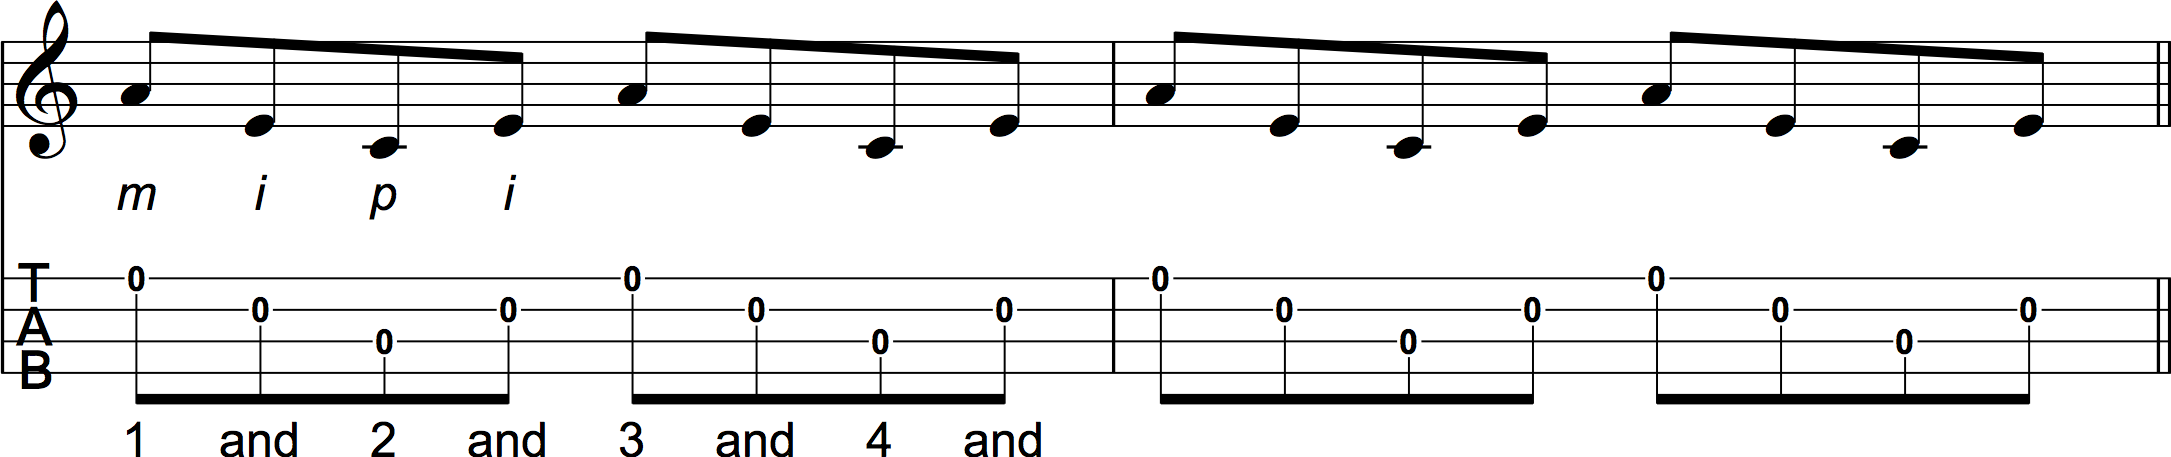 Learn to fingerpick arpeggio study in a minor the first step is to learn this repeating arpeggio pattern after that learn the piece measure by measure one step at a time hexwebz Image collections